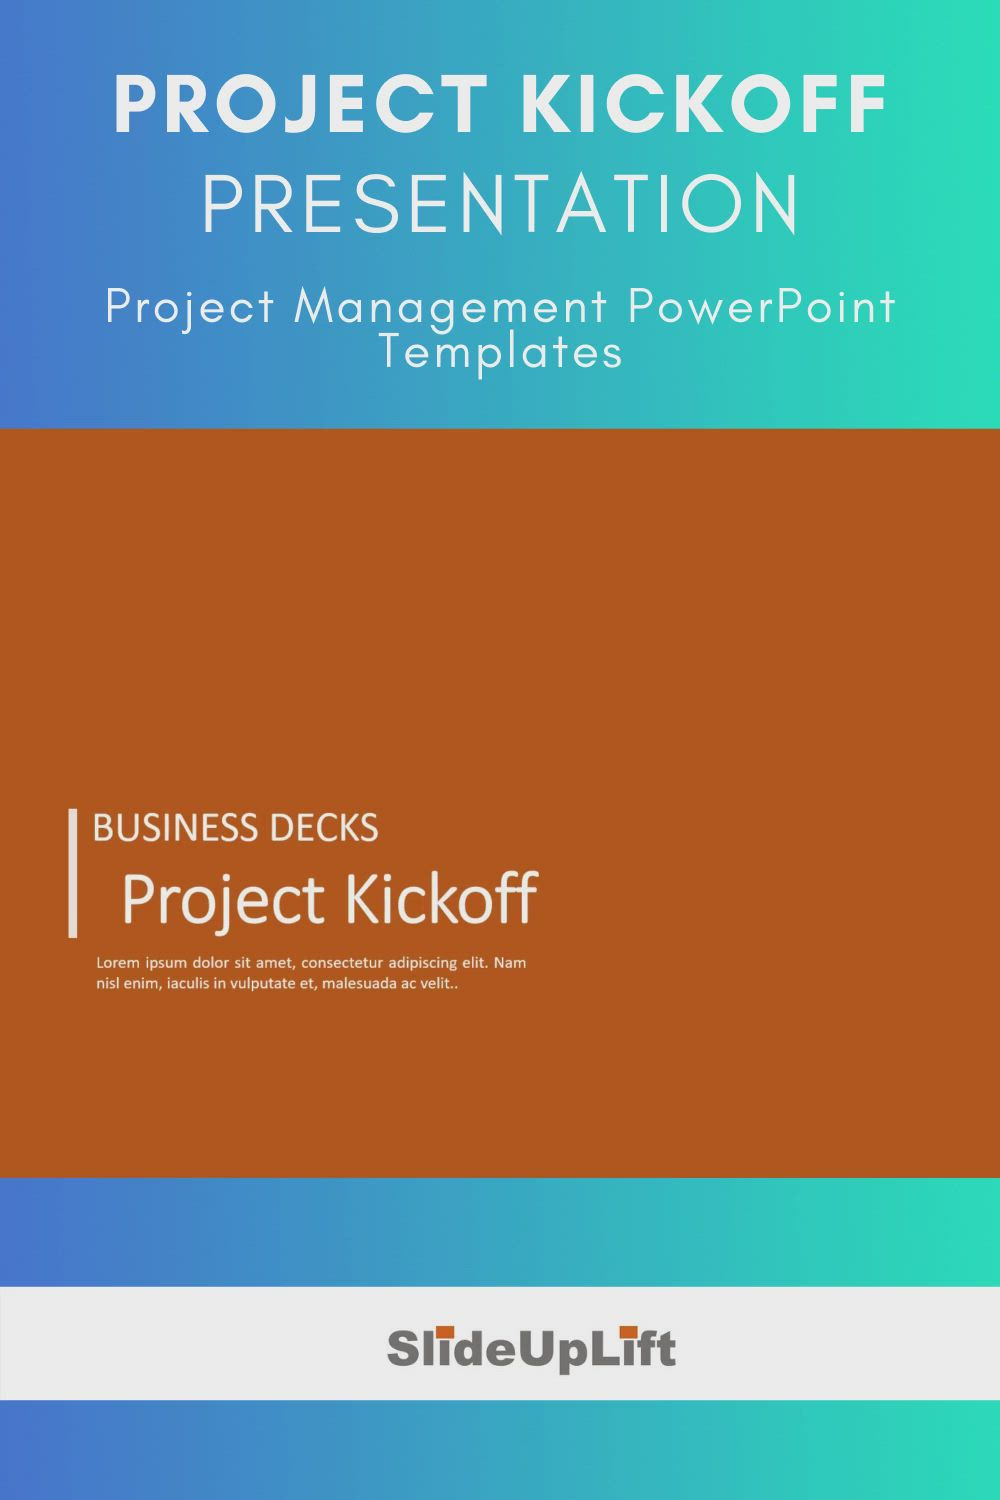 Project Kickoff Presentation Kickoff Meeting Ppt Template Video Presentation Project Management Project Management Templates Project kickoff meeting template ppt